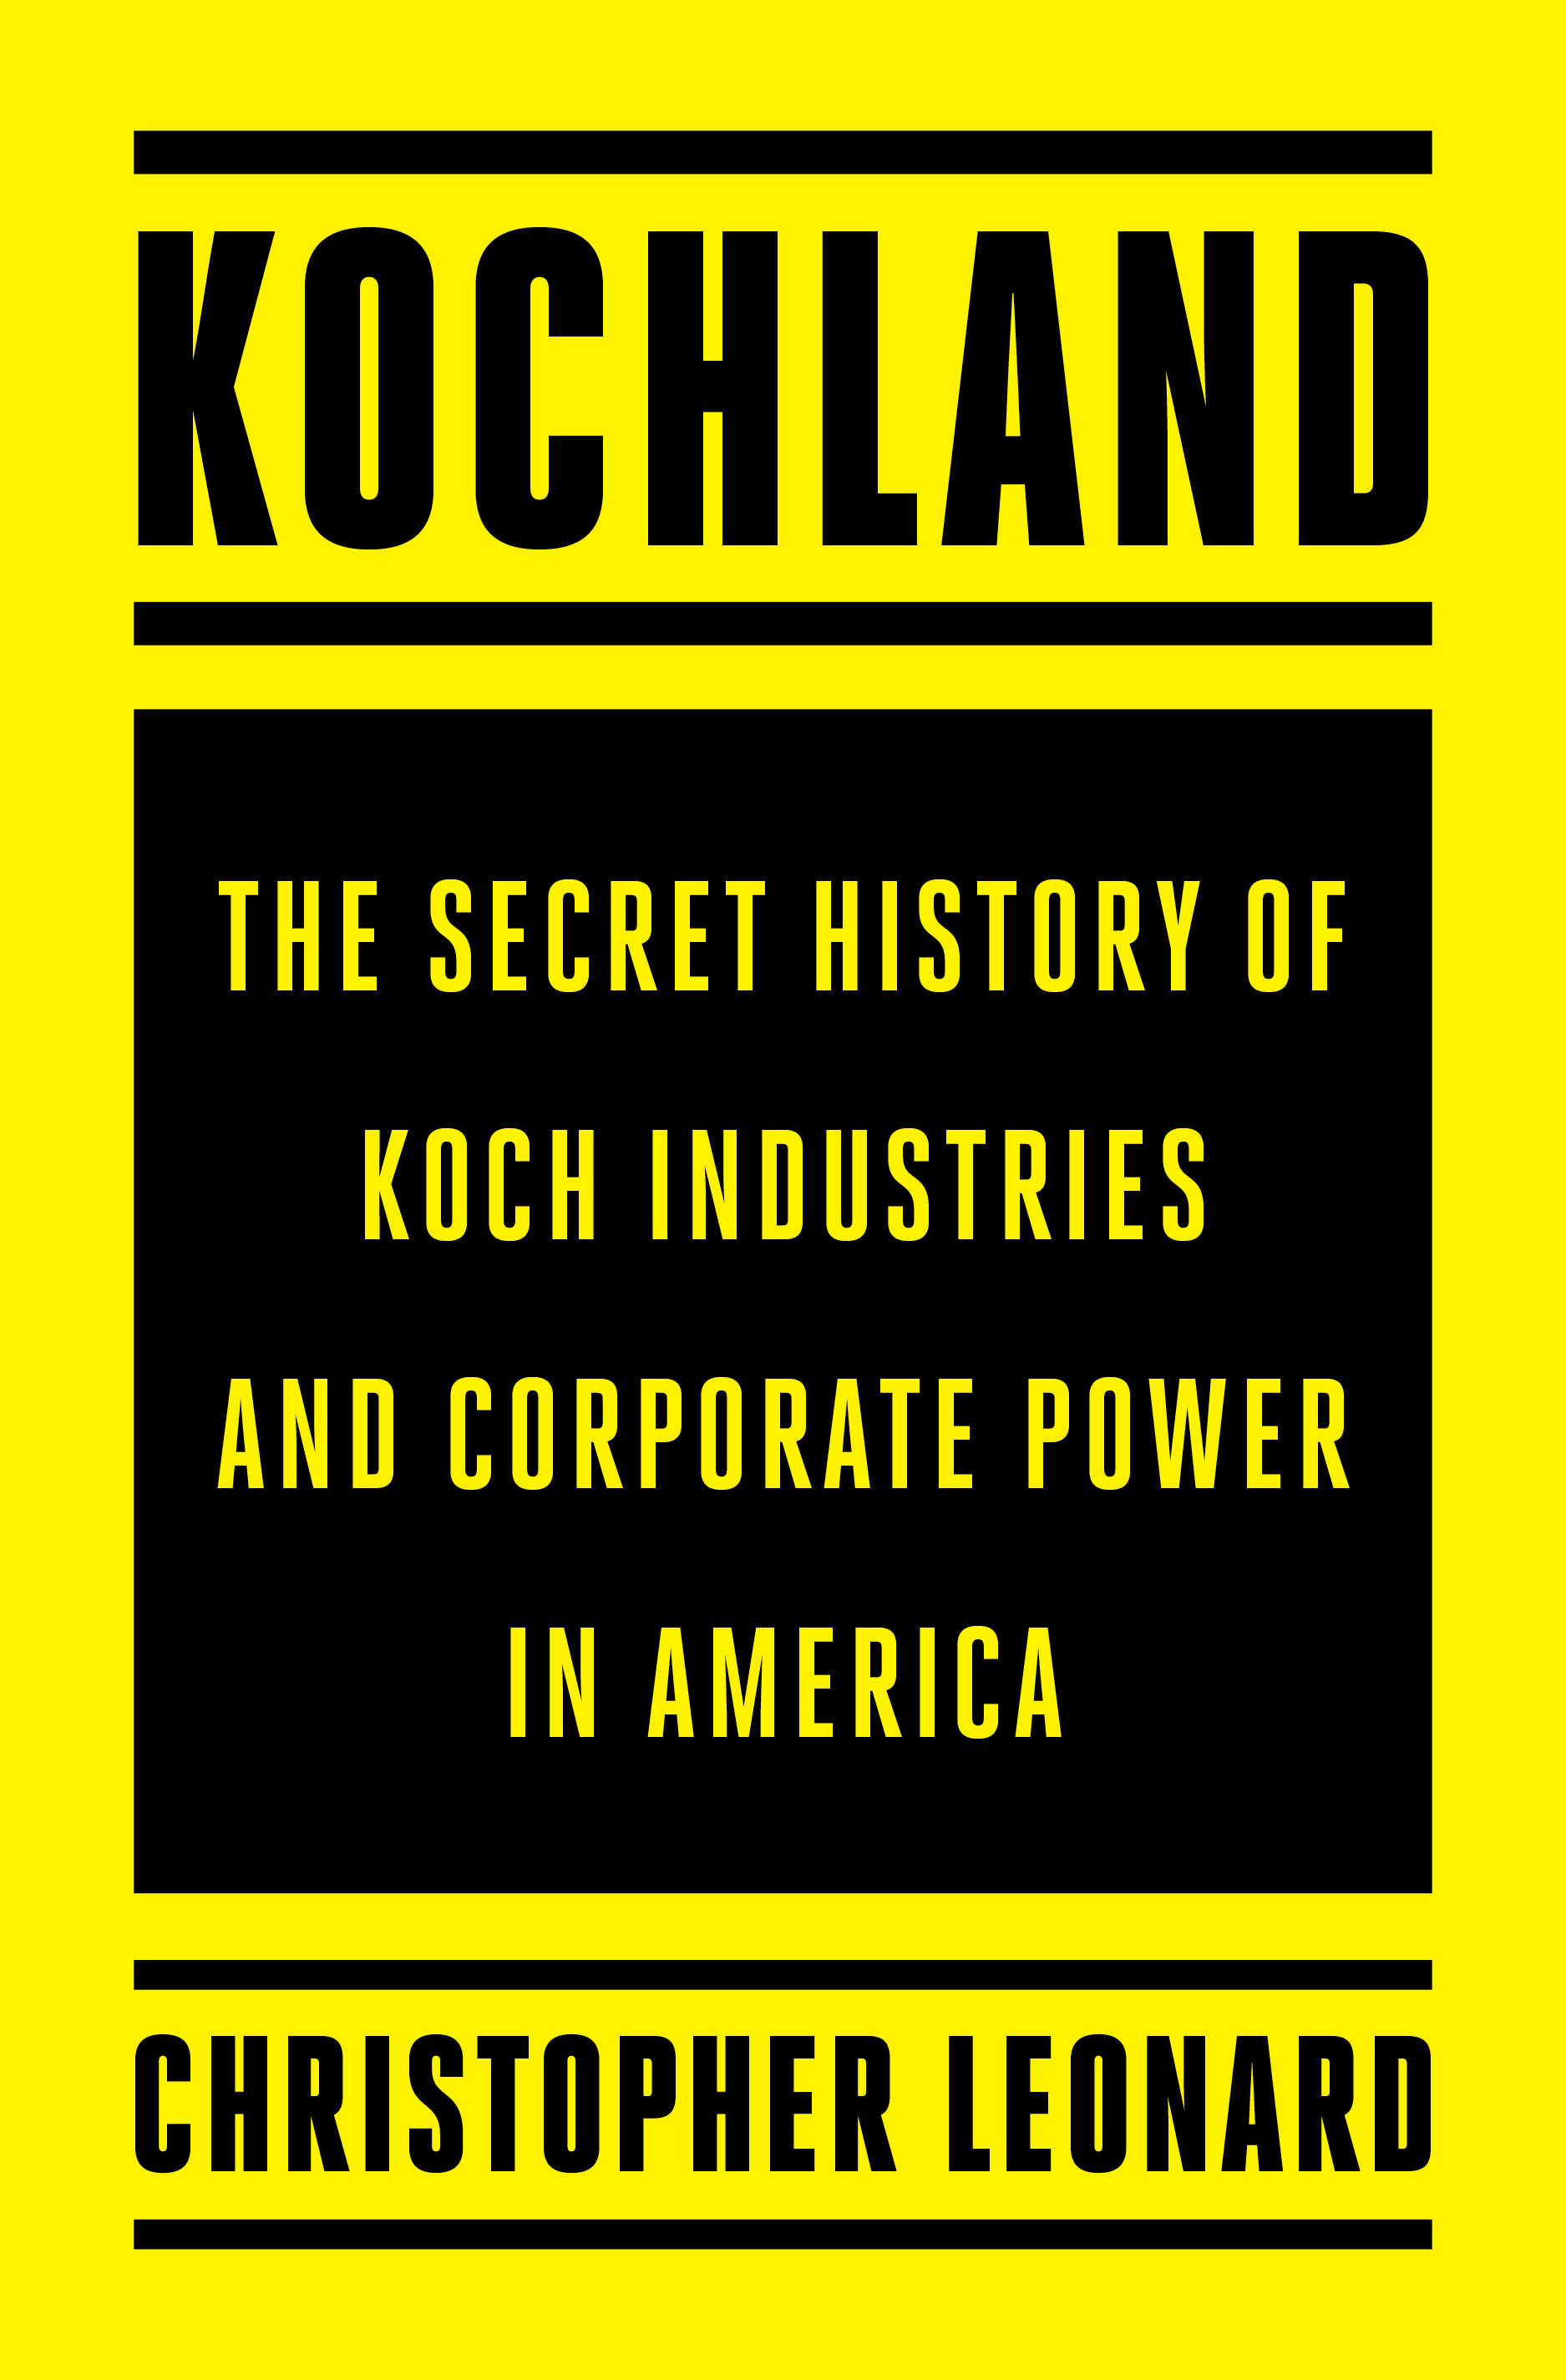 Kochland by Christopher Leonard